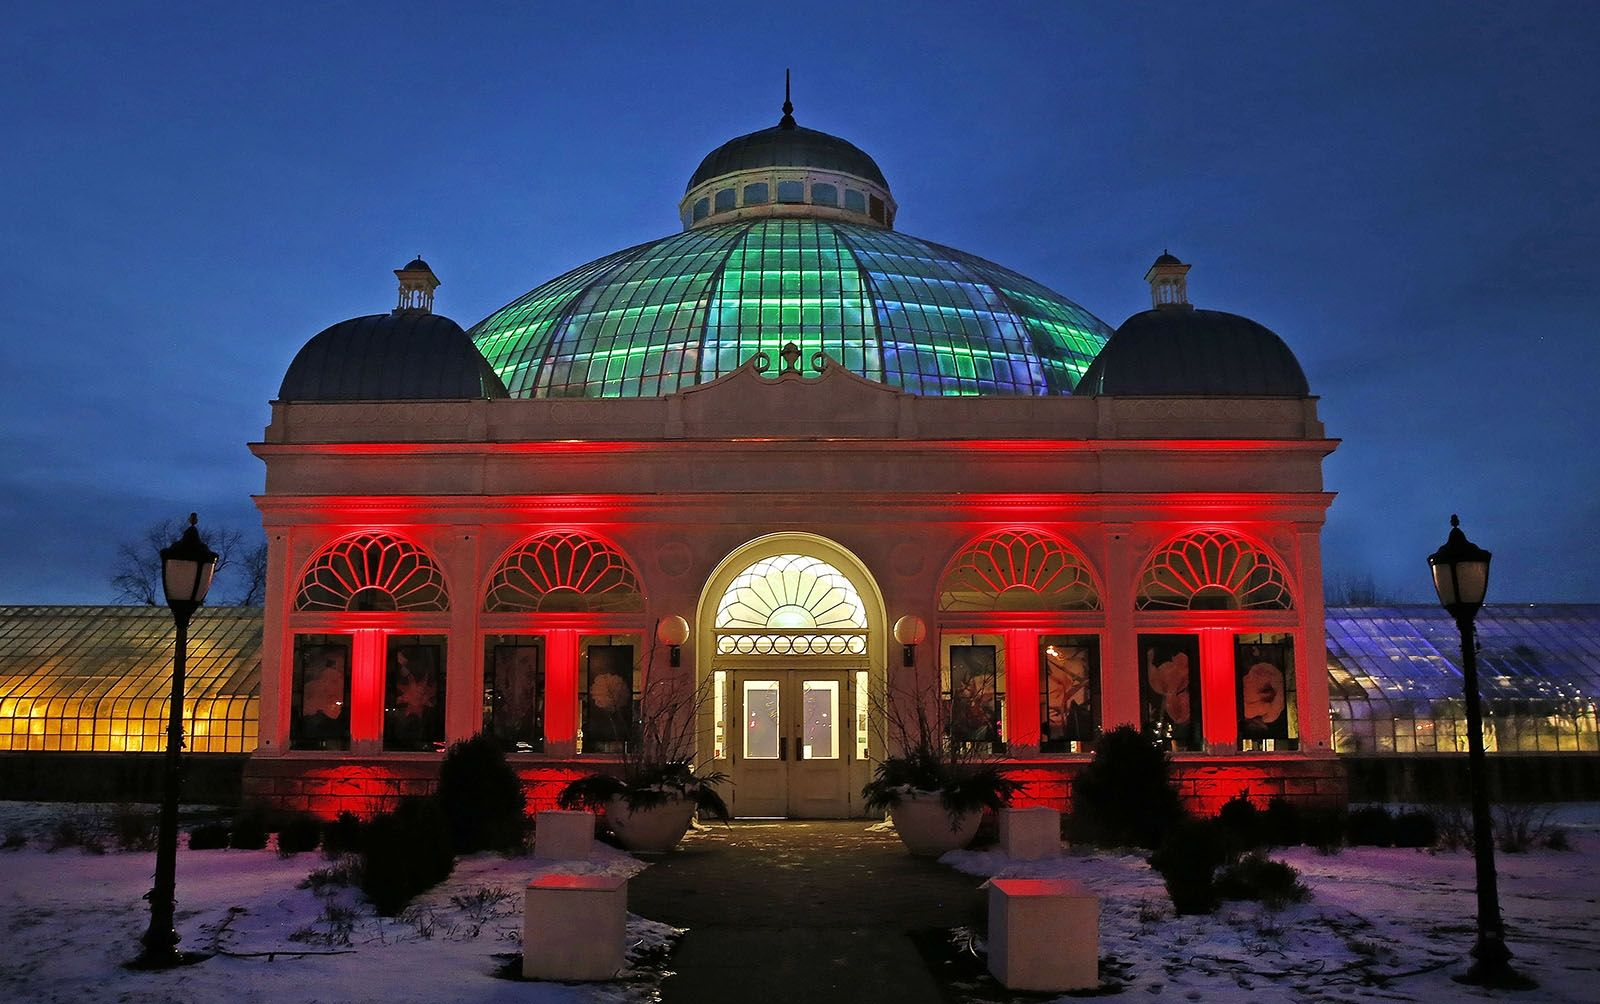 Day 24: Jan. 24, 2020 - The Erie County Botanical Gardens comes alive with light and color as the Lumagination experience opens on January 25 in South Buffalo.